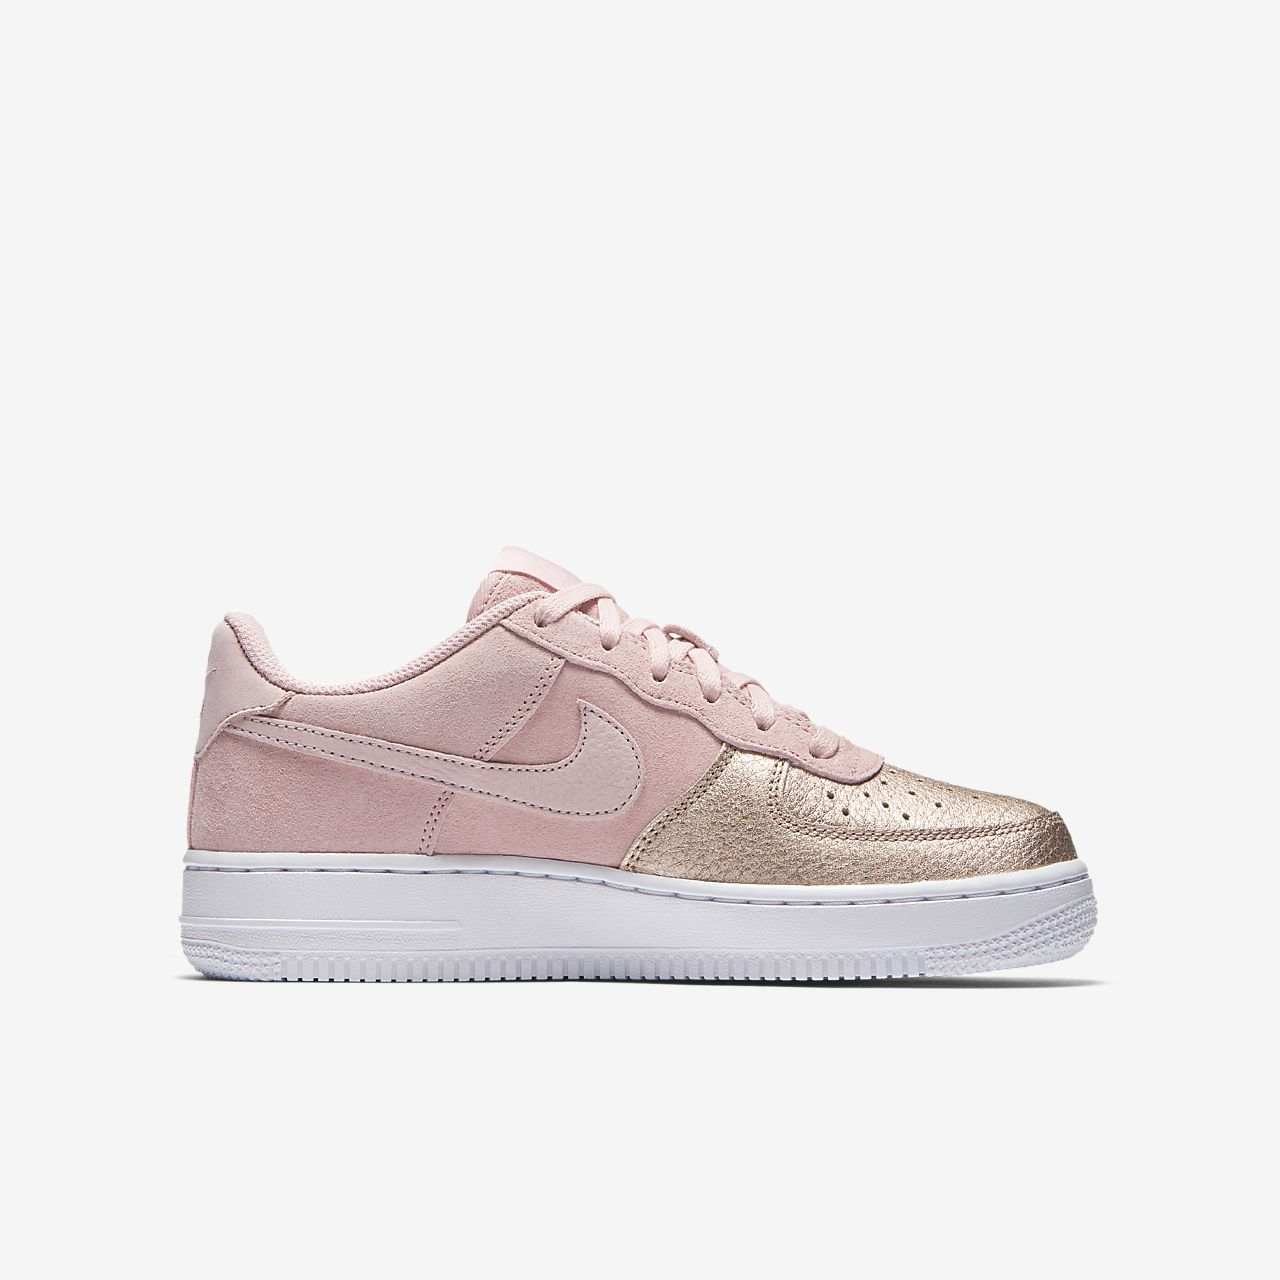 air force 1 pink nz